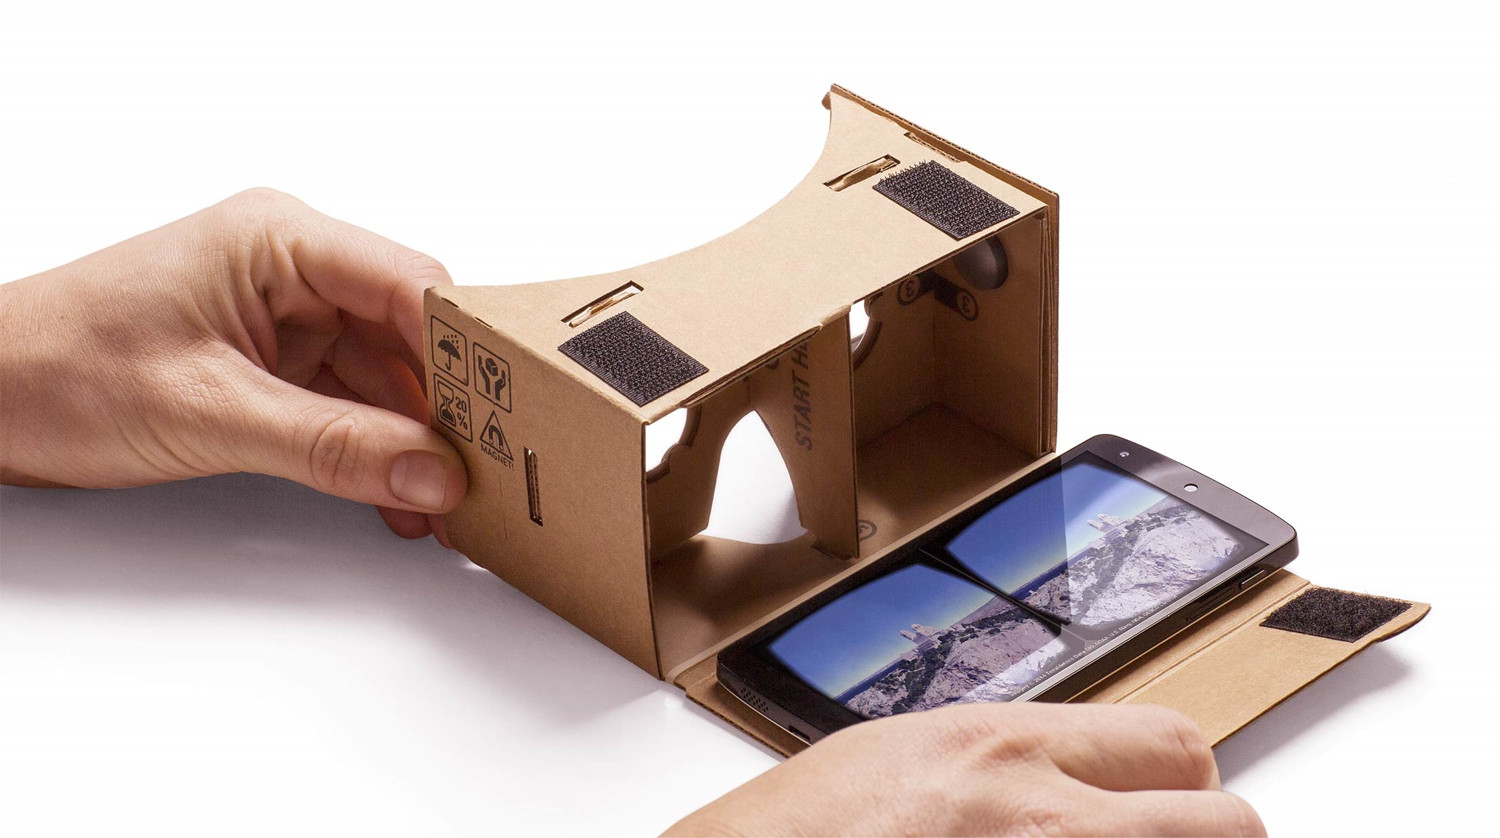 These Apps work well on your device when used in conjuntion with google cardboard or similar.https://vr.google.com/cardboard/